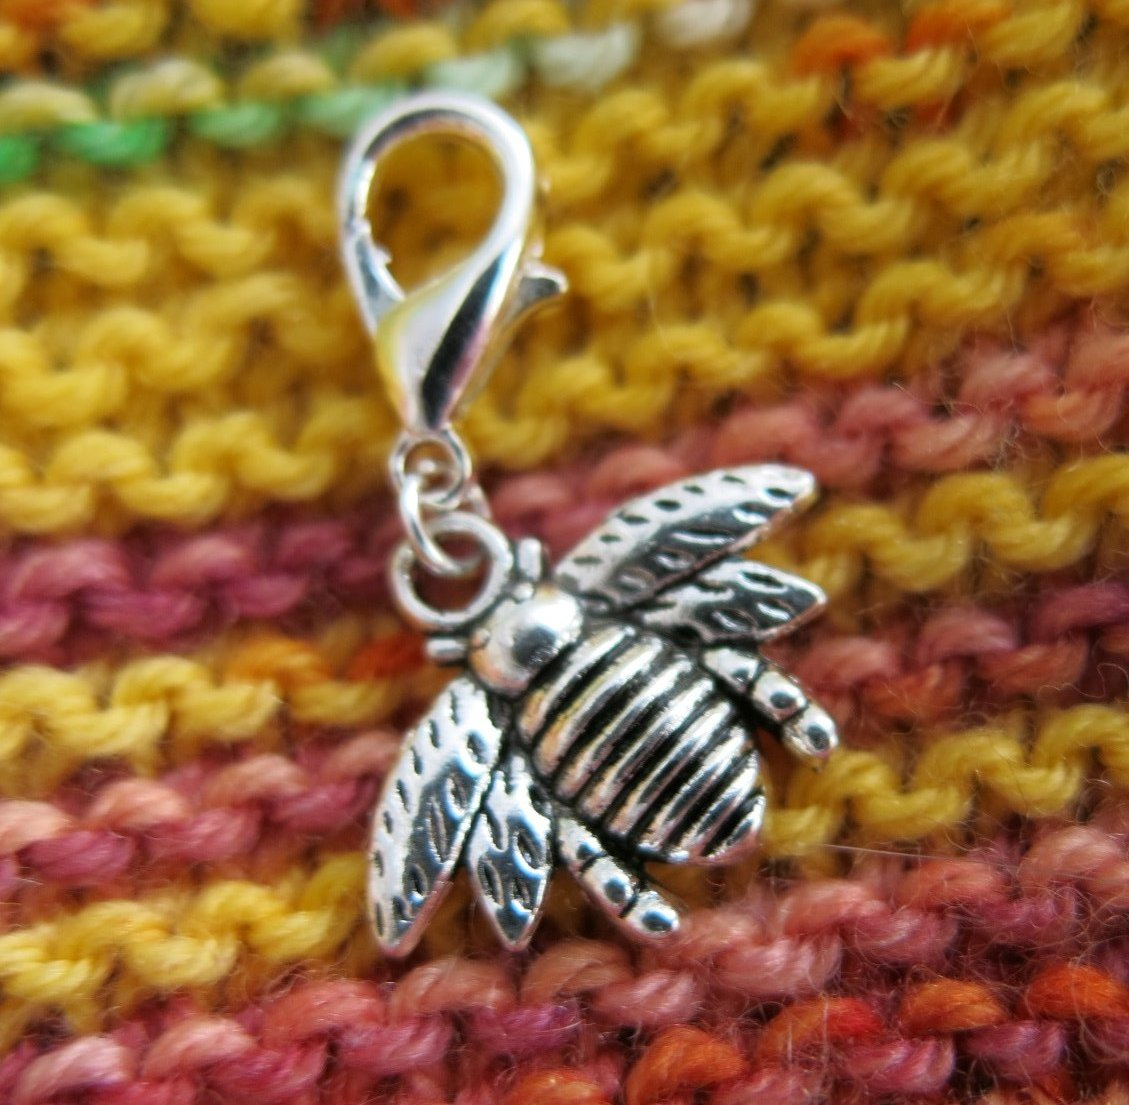 silver bumble bee place keeper stitch marker for knitting and crochet